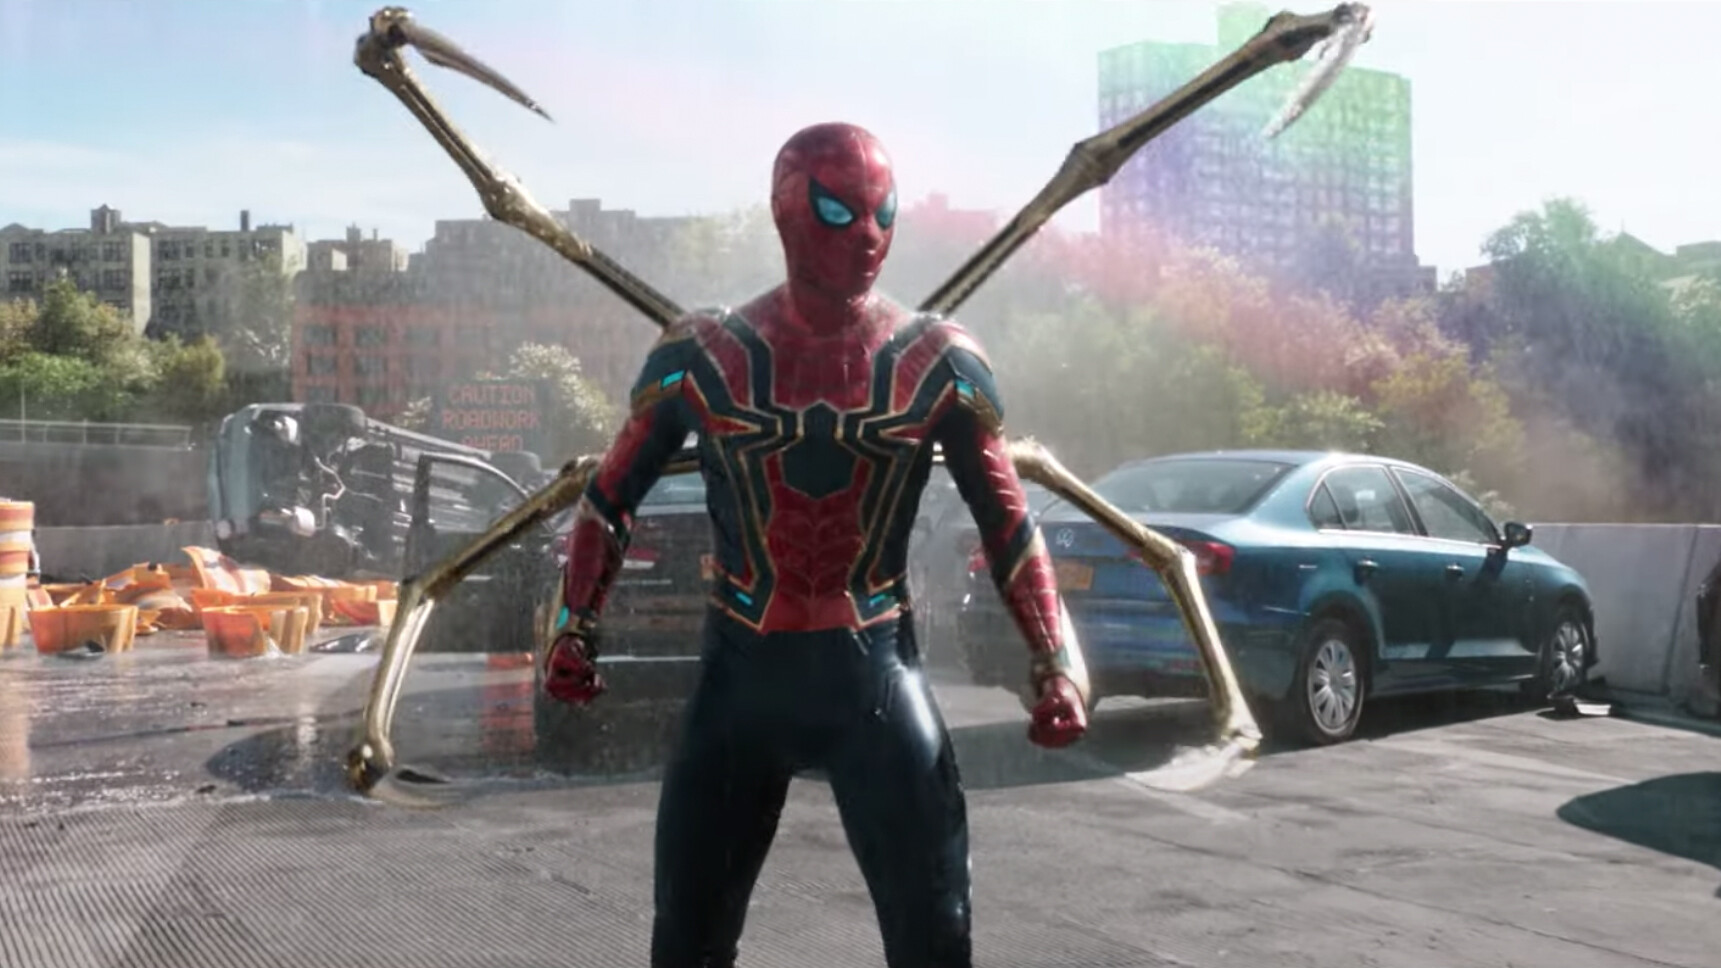 'Spider-Man: No Way Home' trailer has a few surprises in store